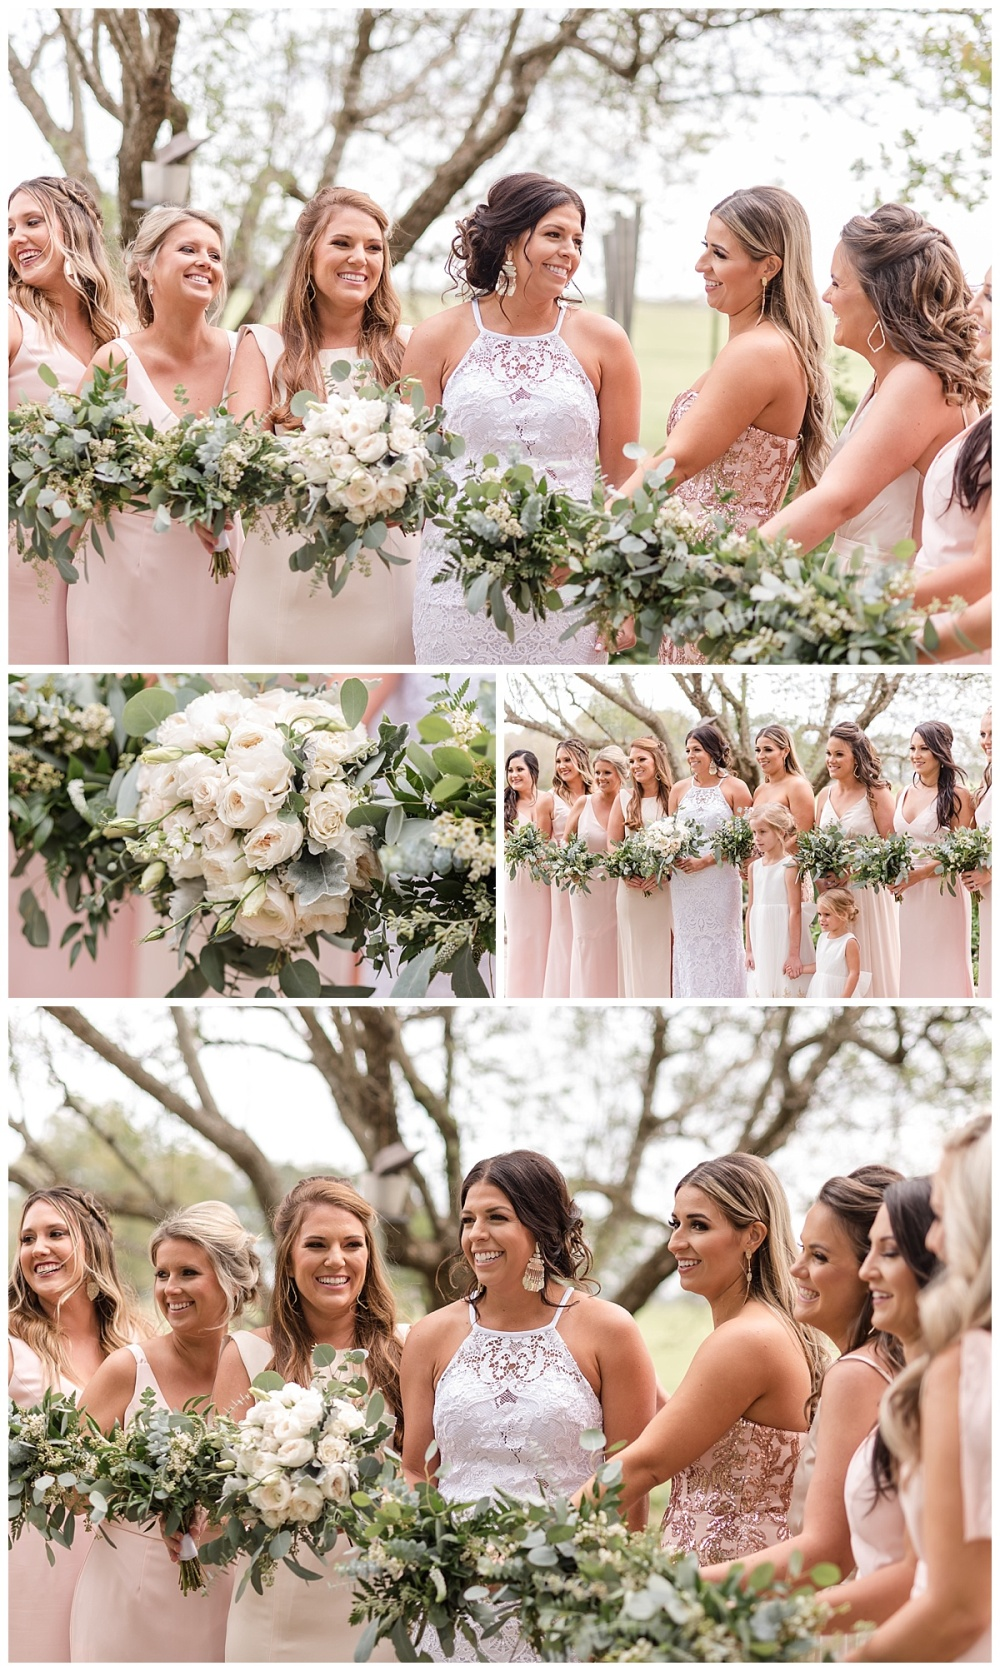 South-Texas-Wedding-Photographer-Rose-Gold-and-Navy-Theme-LaVernia-Bride-Groom-Carly-Barton-Photography_0025